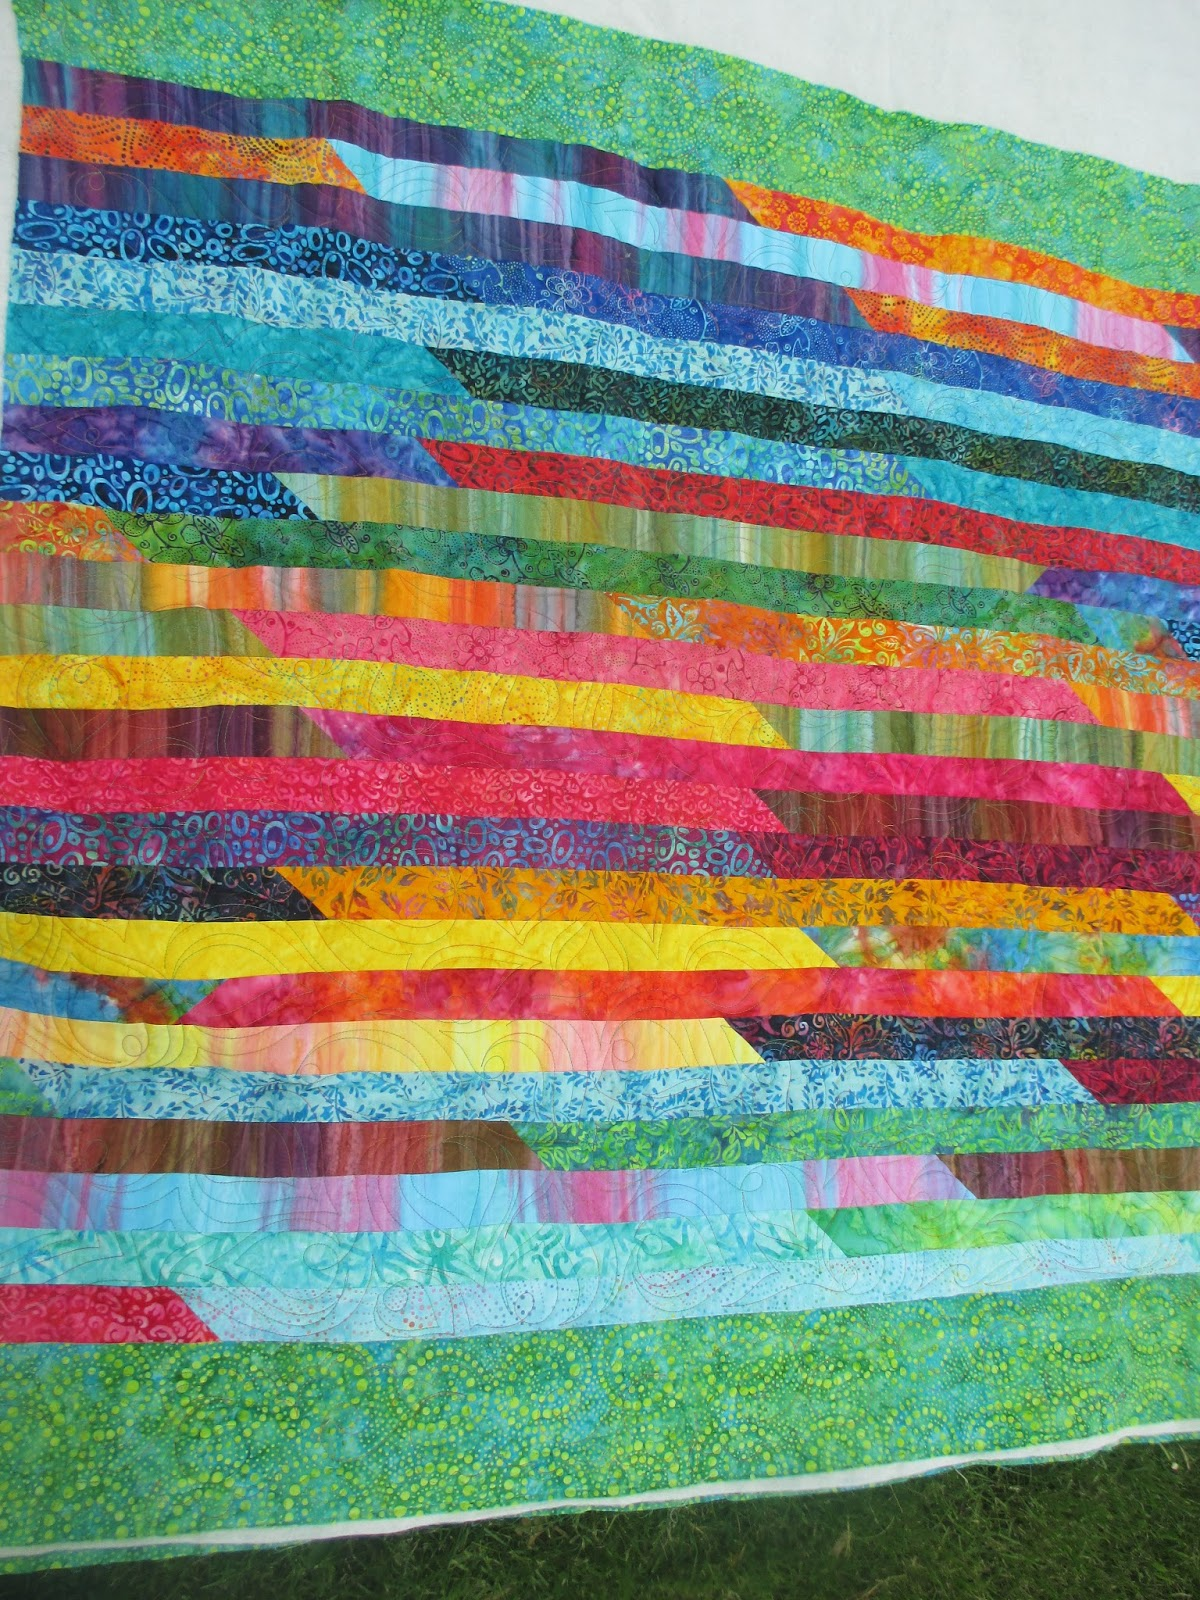 Down To Sew Batik Jelly Roll Quilt